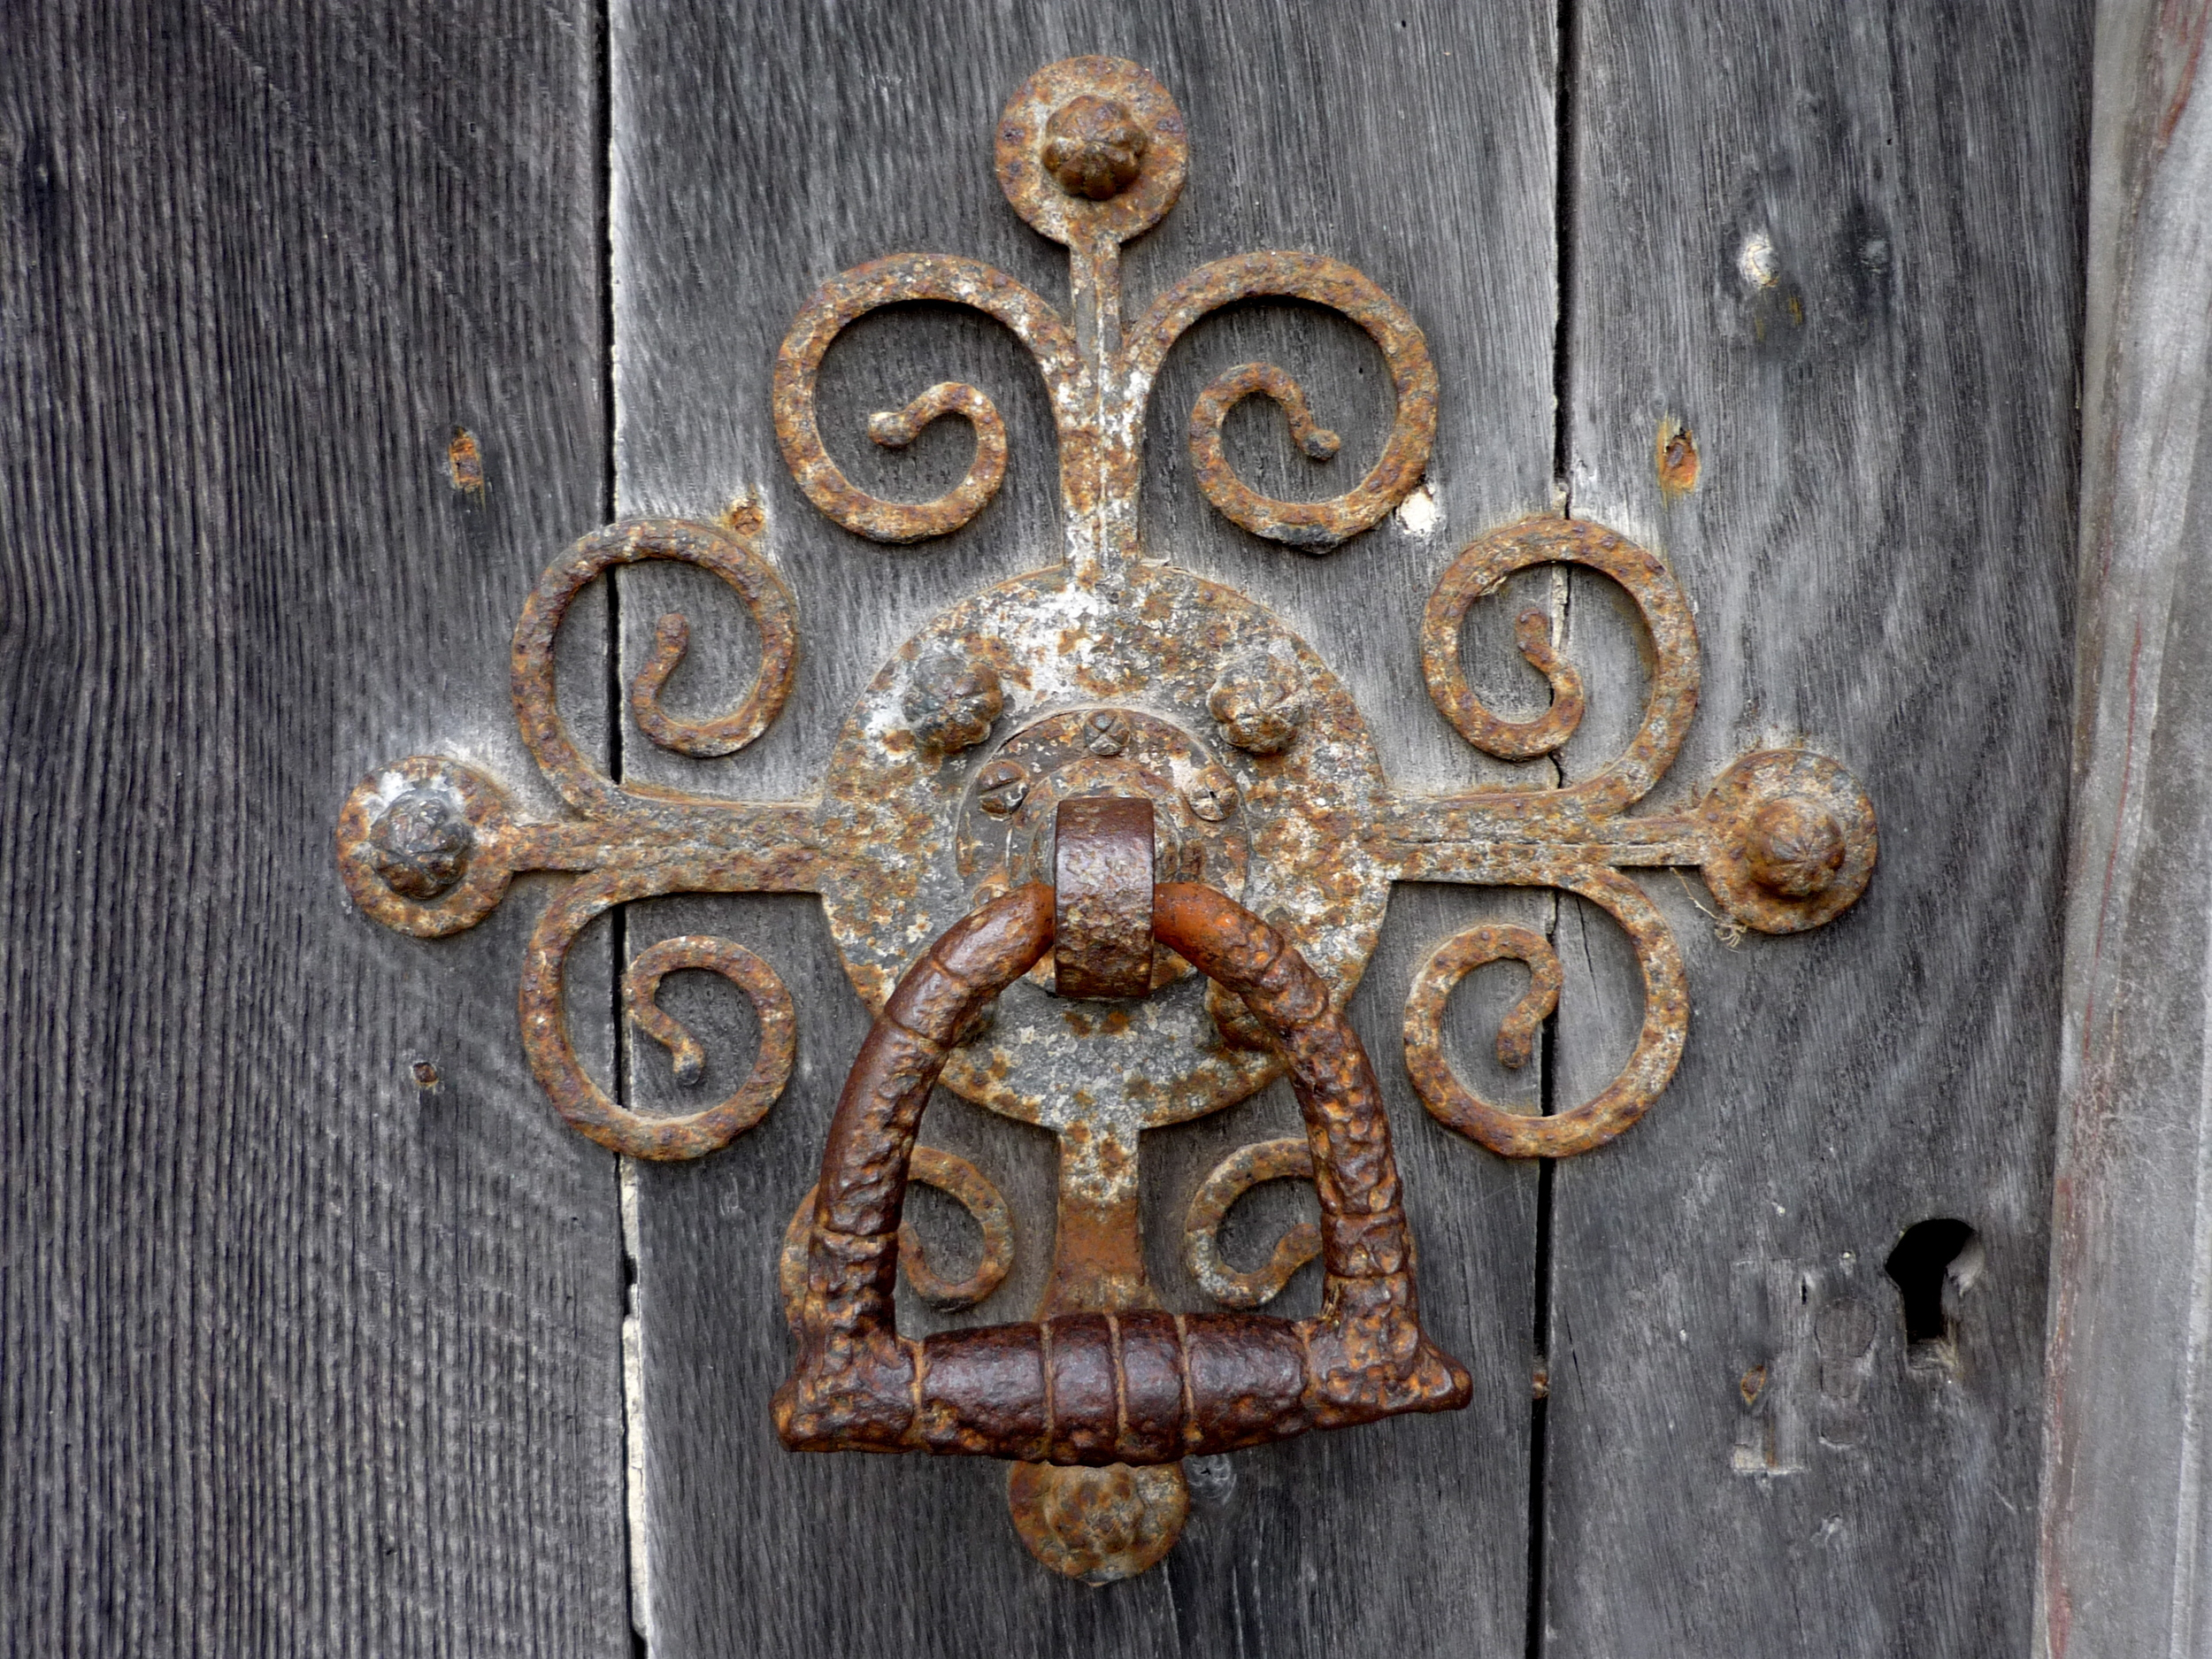 Door knocker on one of the main doors at the West Front of Salisbury Cathedral